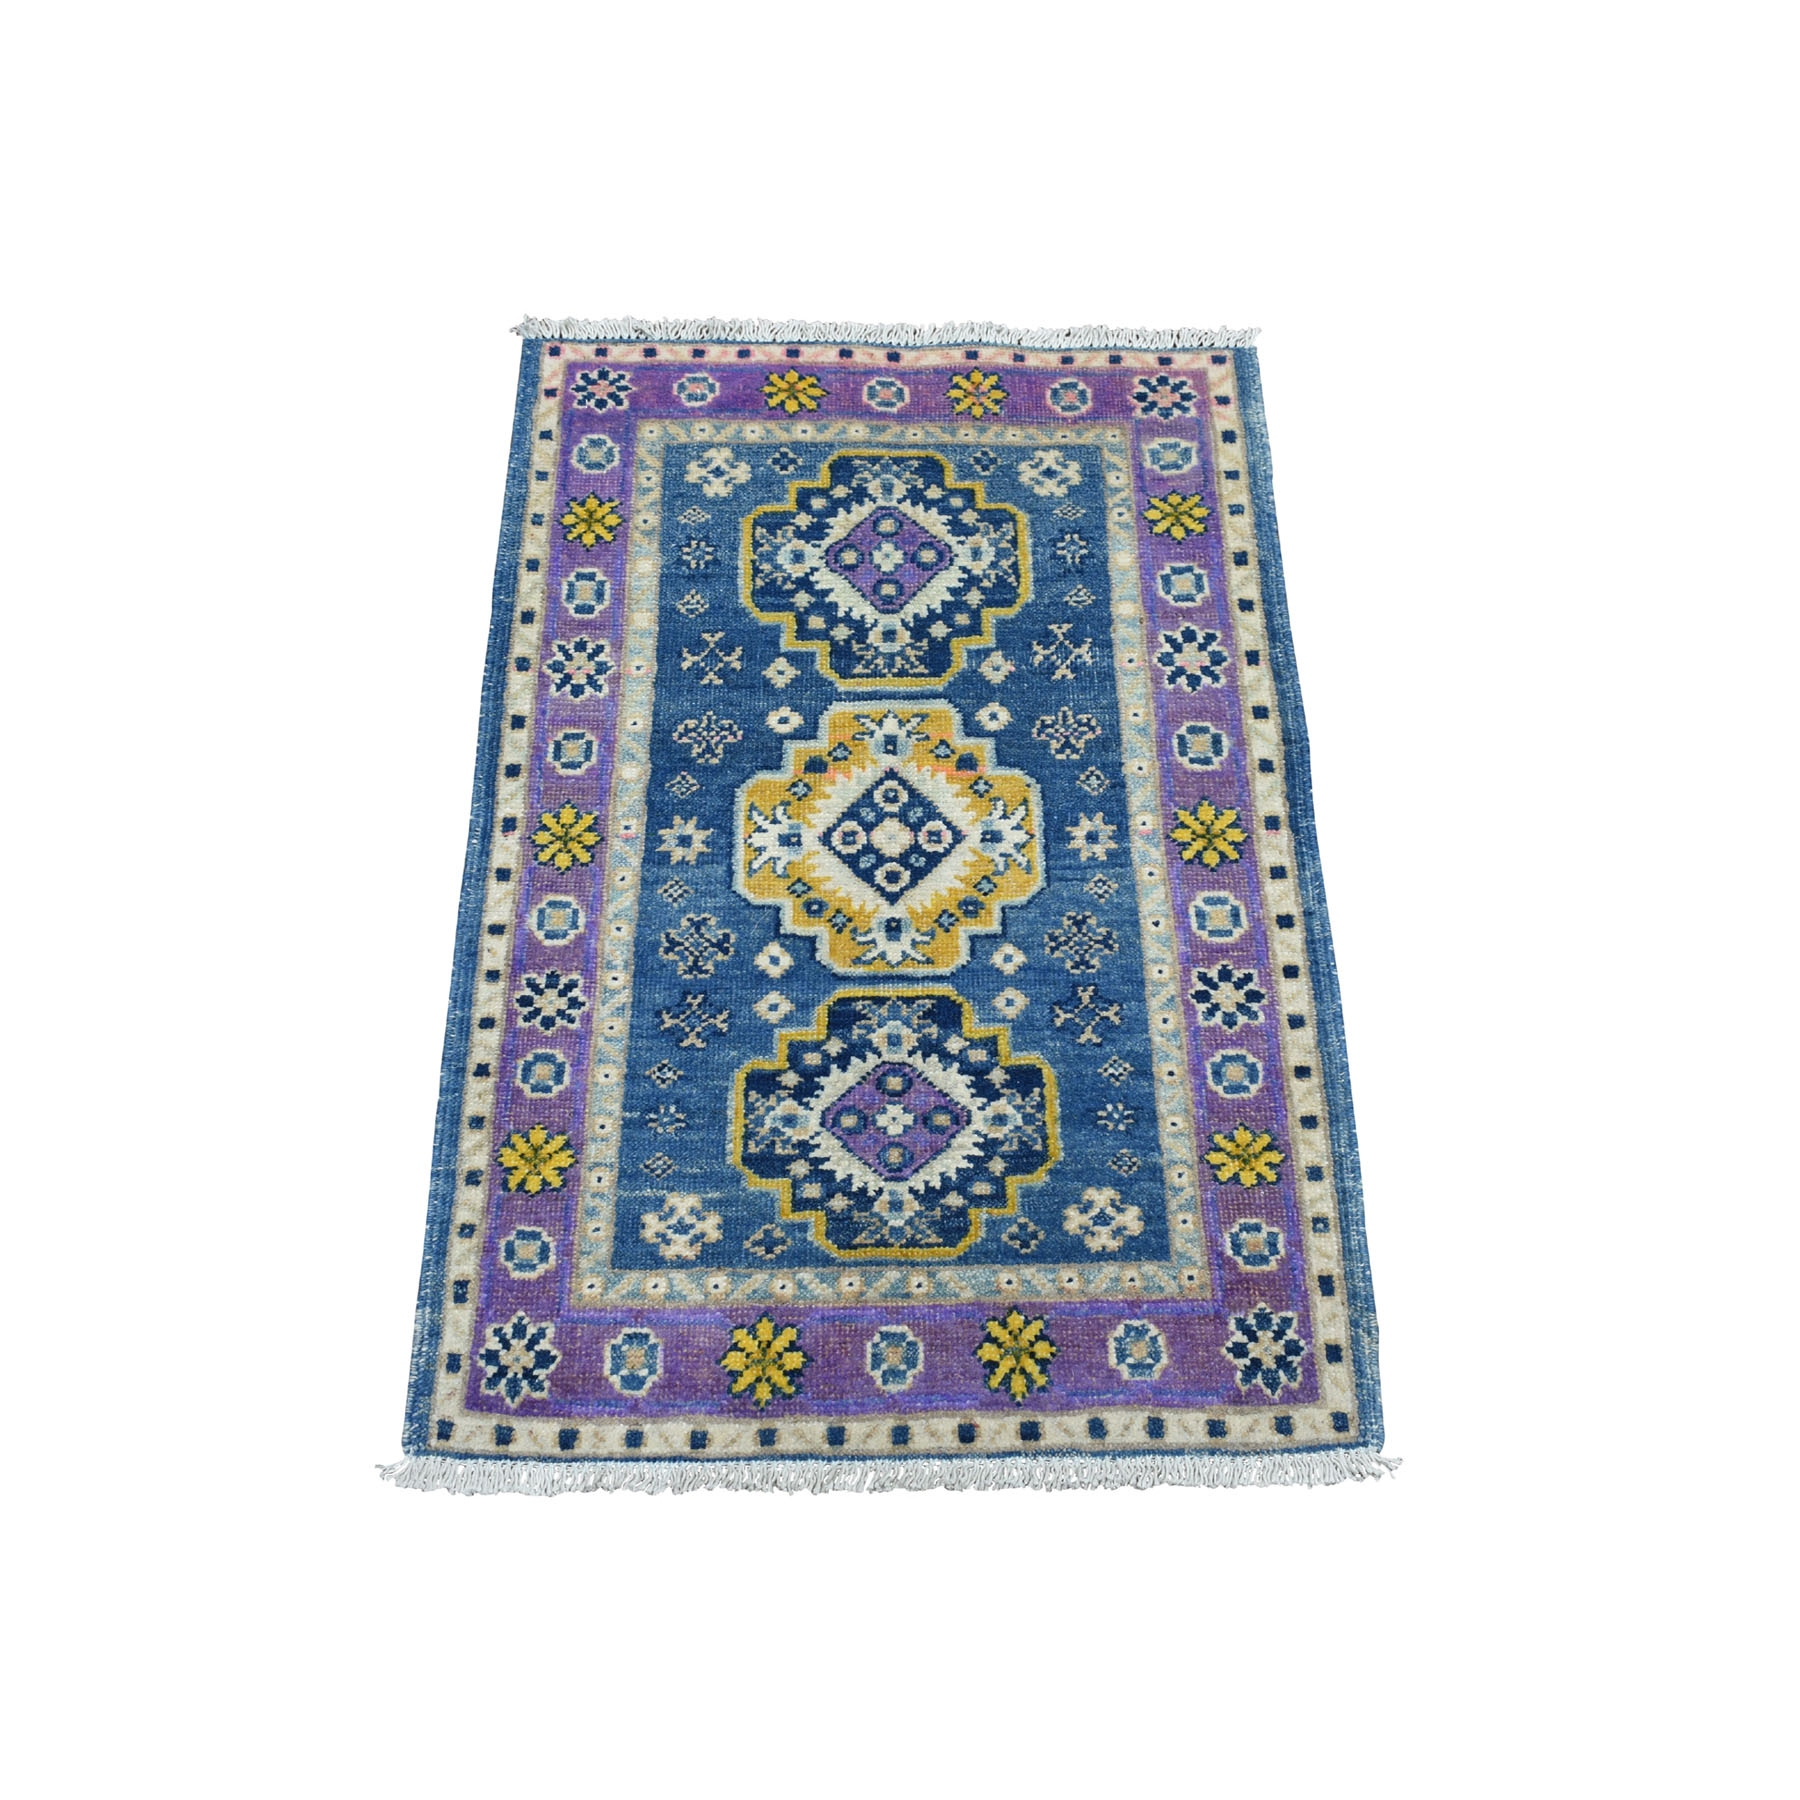 2'X3' Colorful Blue Fusion Kazak Pure Wool Geometric Design Hand Knotted Oriental Rug moaeda76